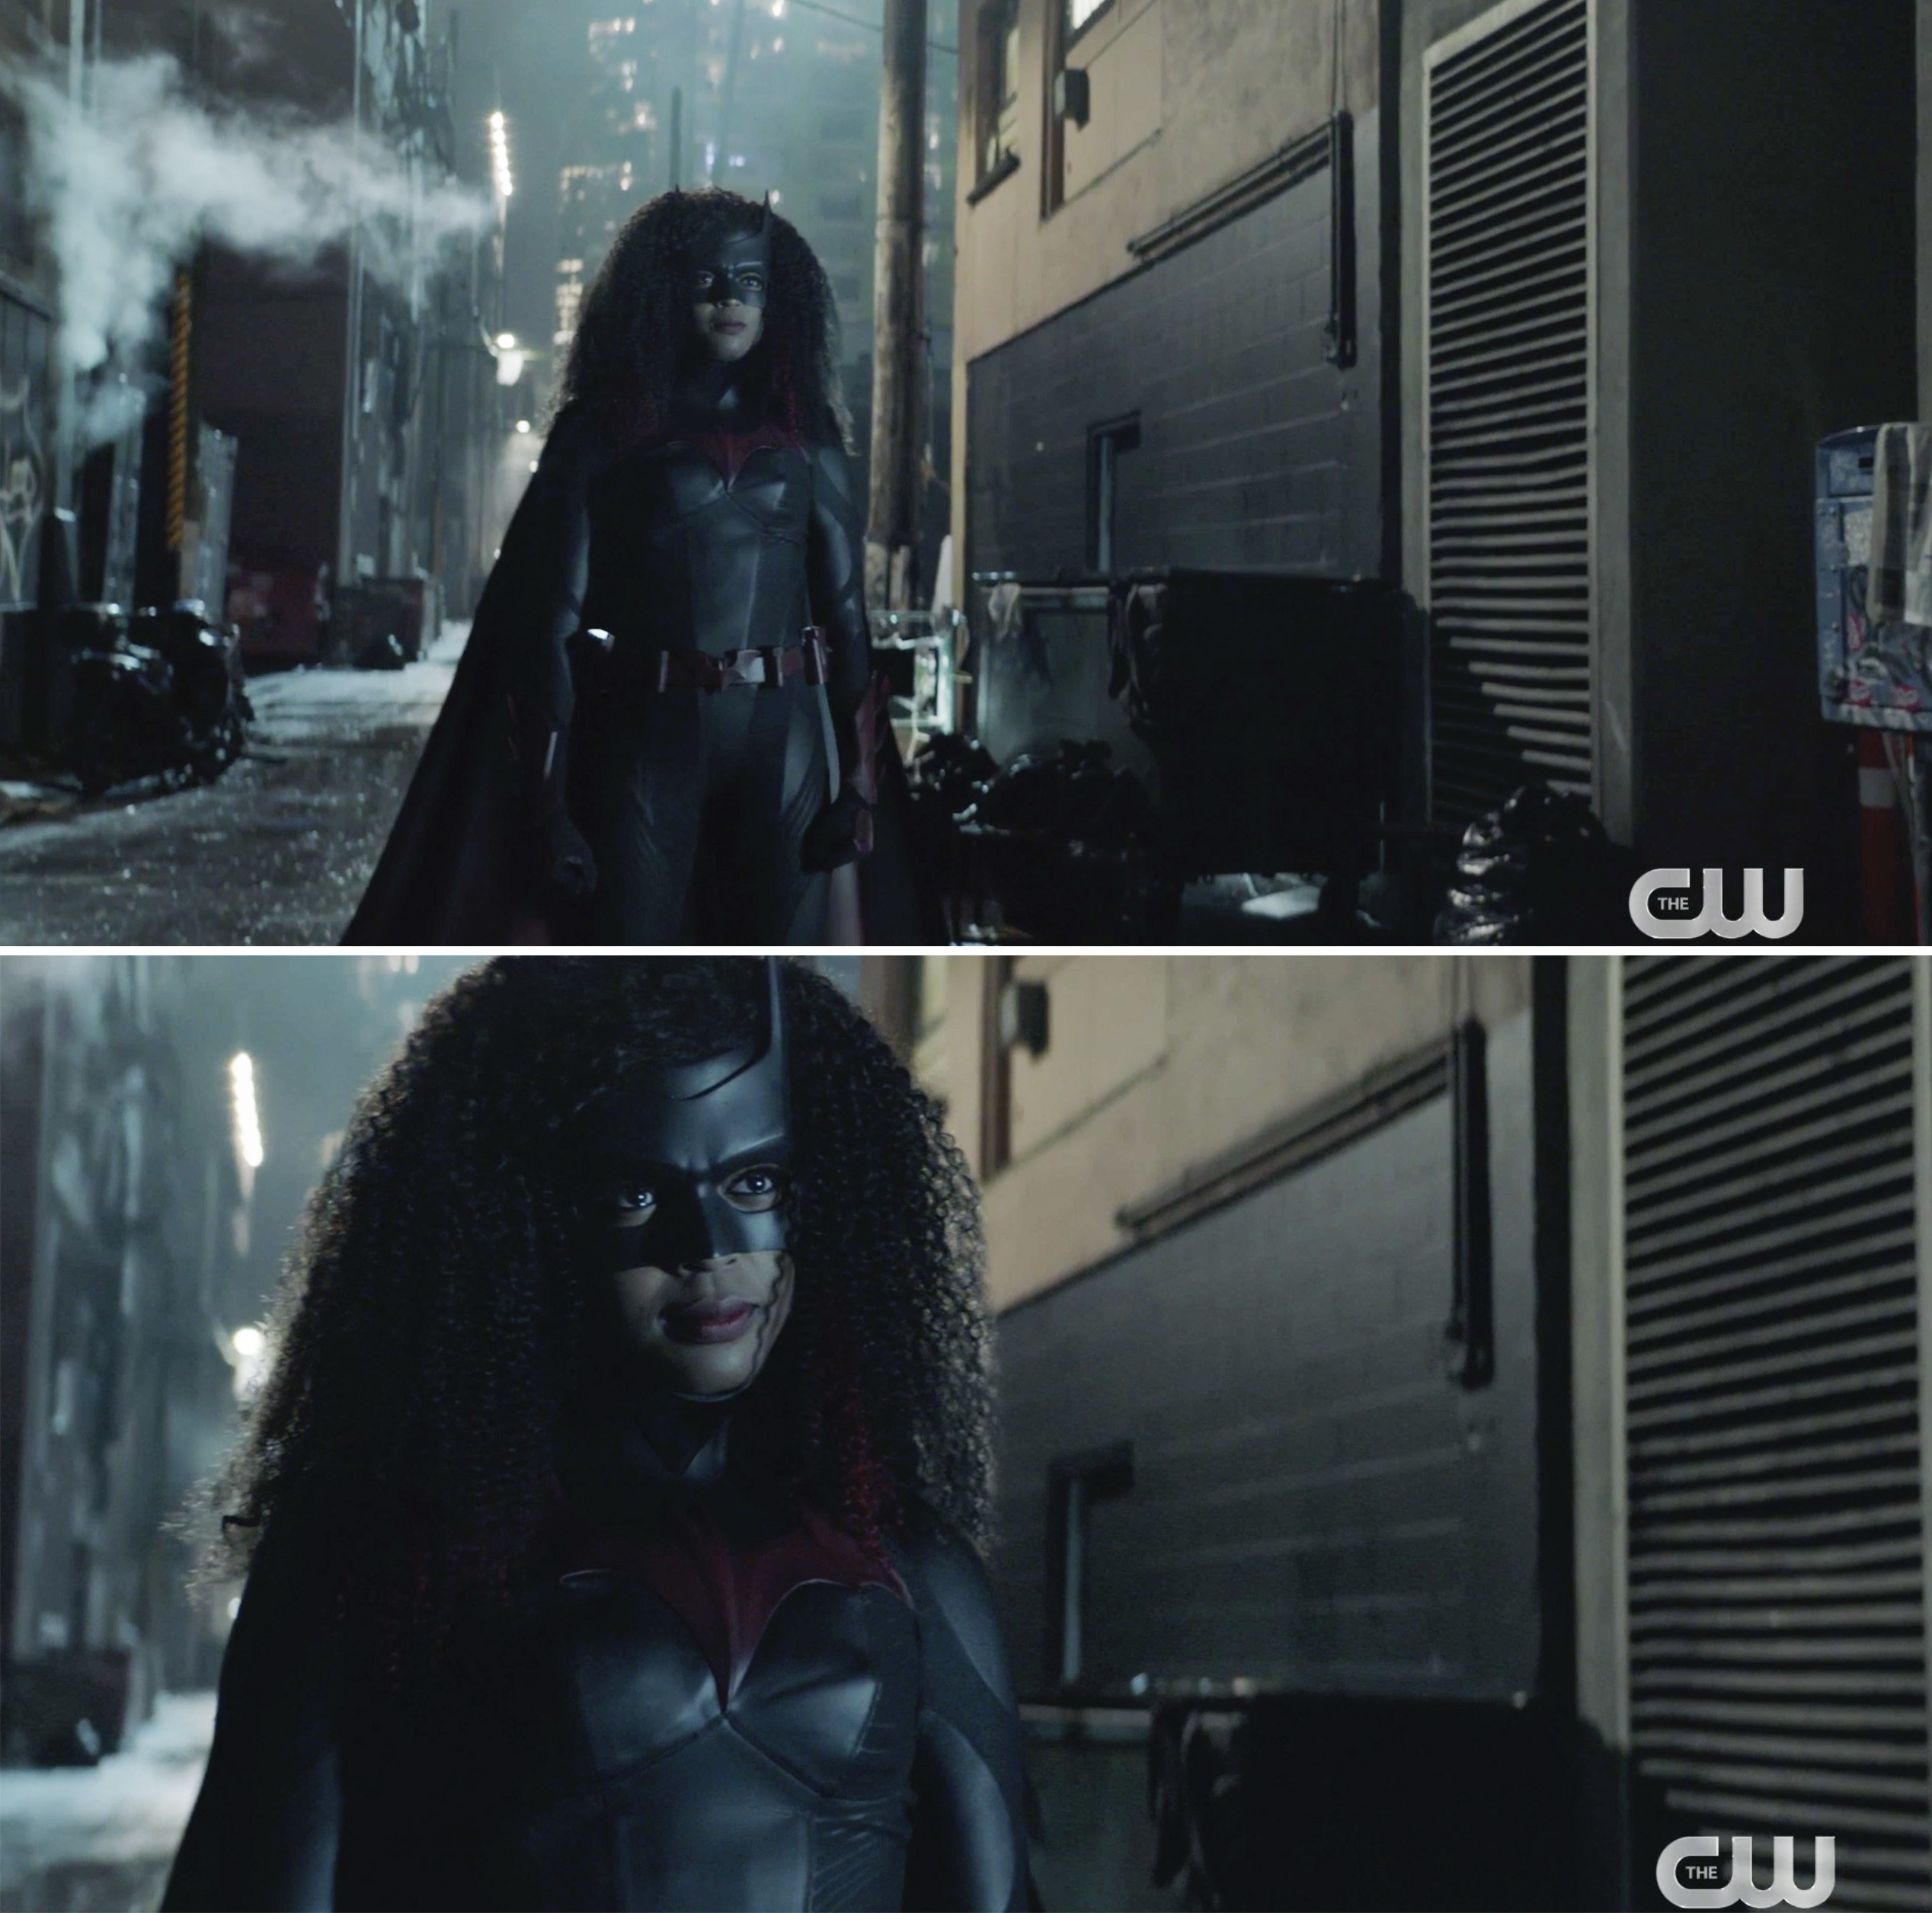 Ryan in an alleyway in her Batsuit complete with a new wig